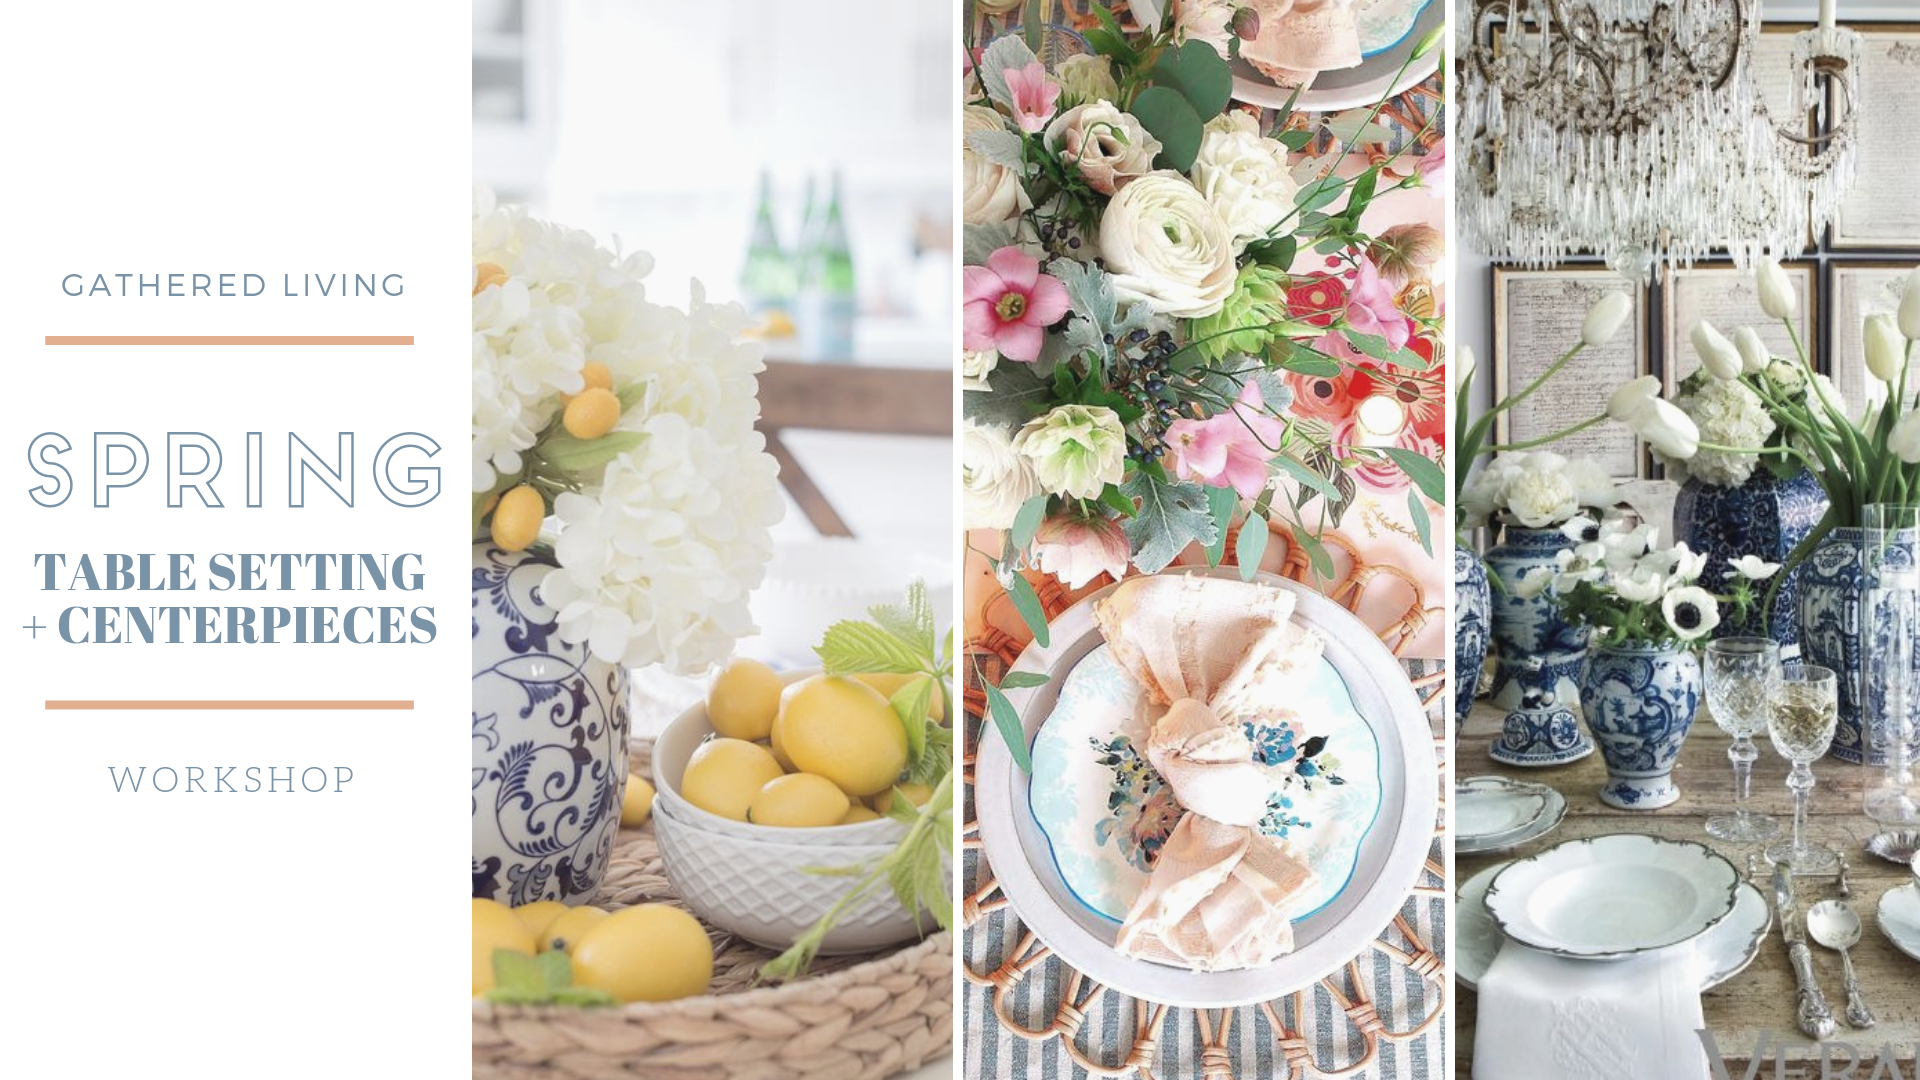 tablesetting + centerpieces.png